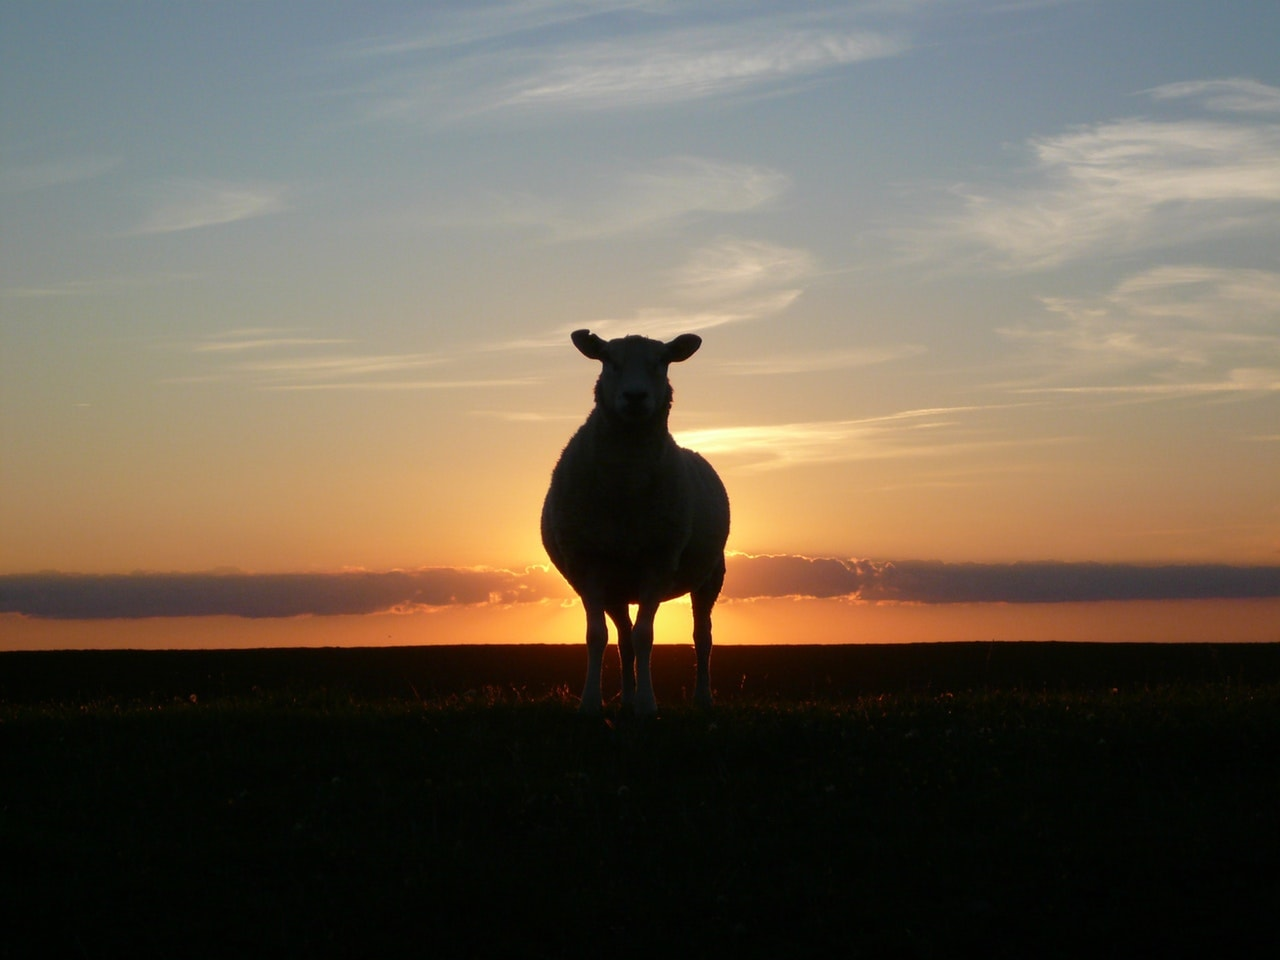 sheep at sunset sermon on the mount